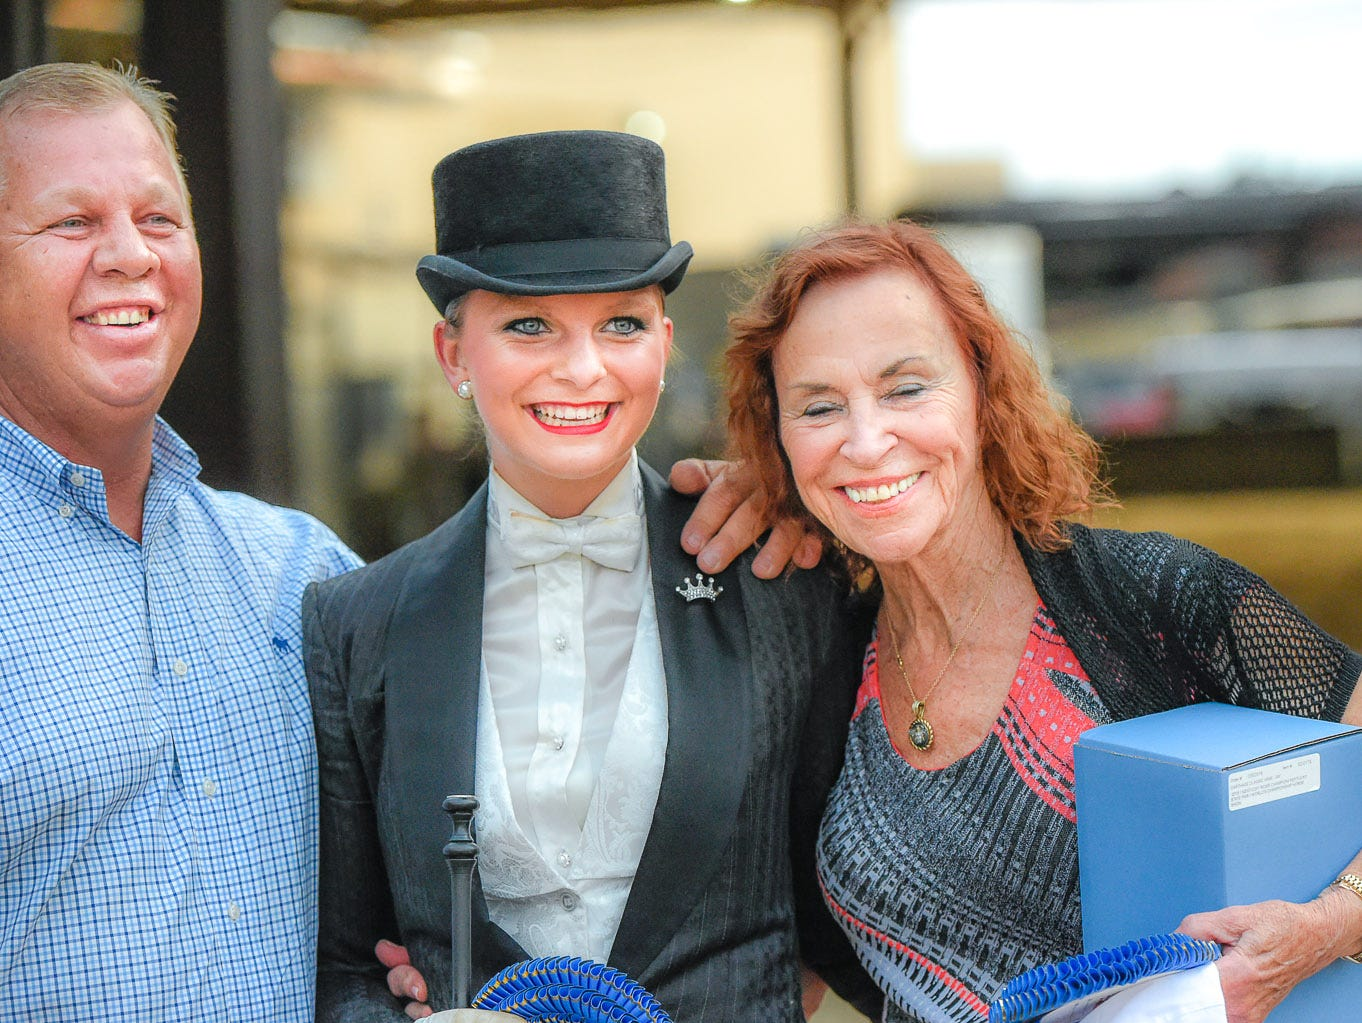 Trainer Mark Turner with Alayna Applegate, winner of the Kentucky Riders Equitation World Championship and trainer, Lillian Shively.